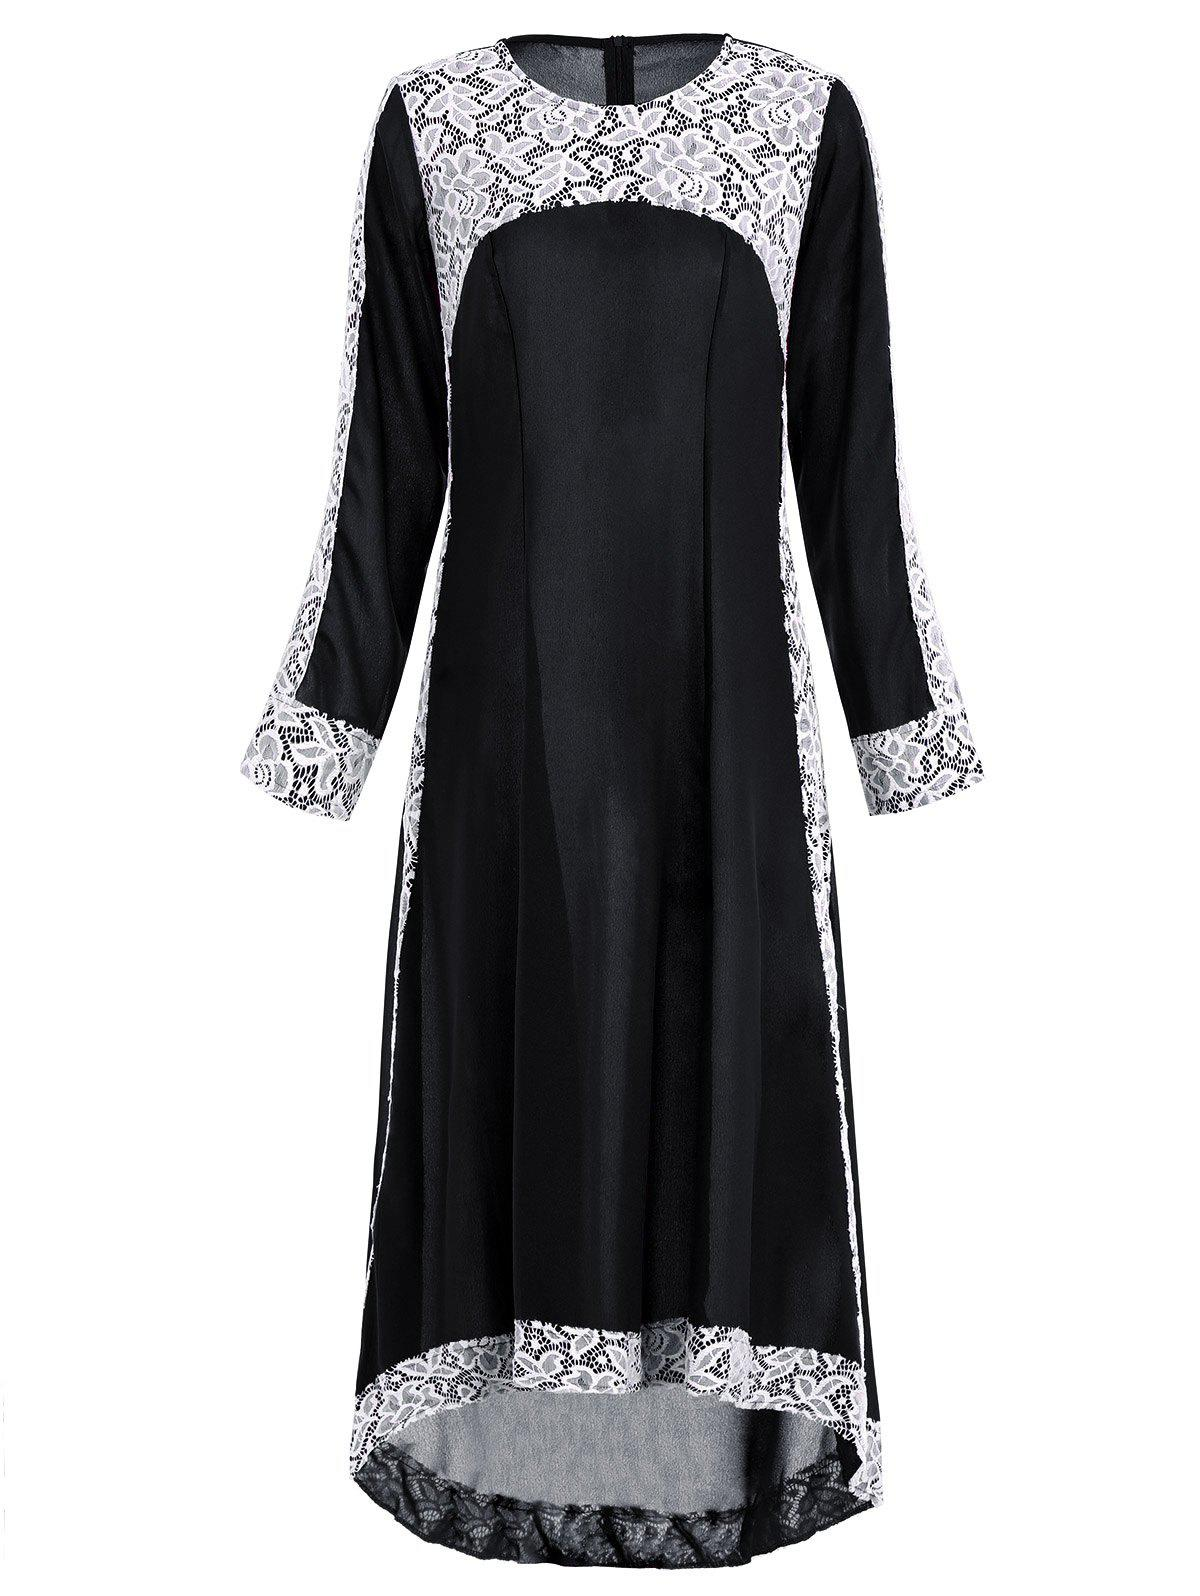 Lace Insert Maxi Asymmetric Long Sleeve Dress long sleeve lace insert mini dress